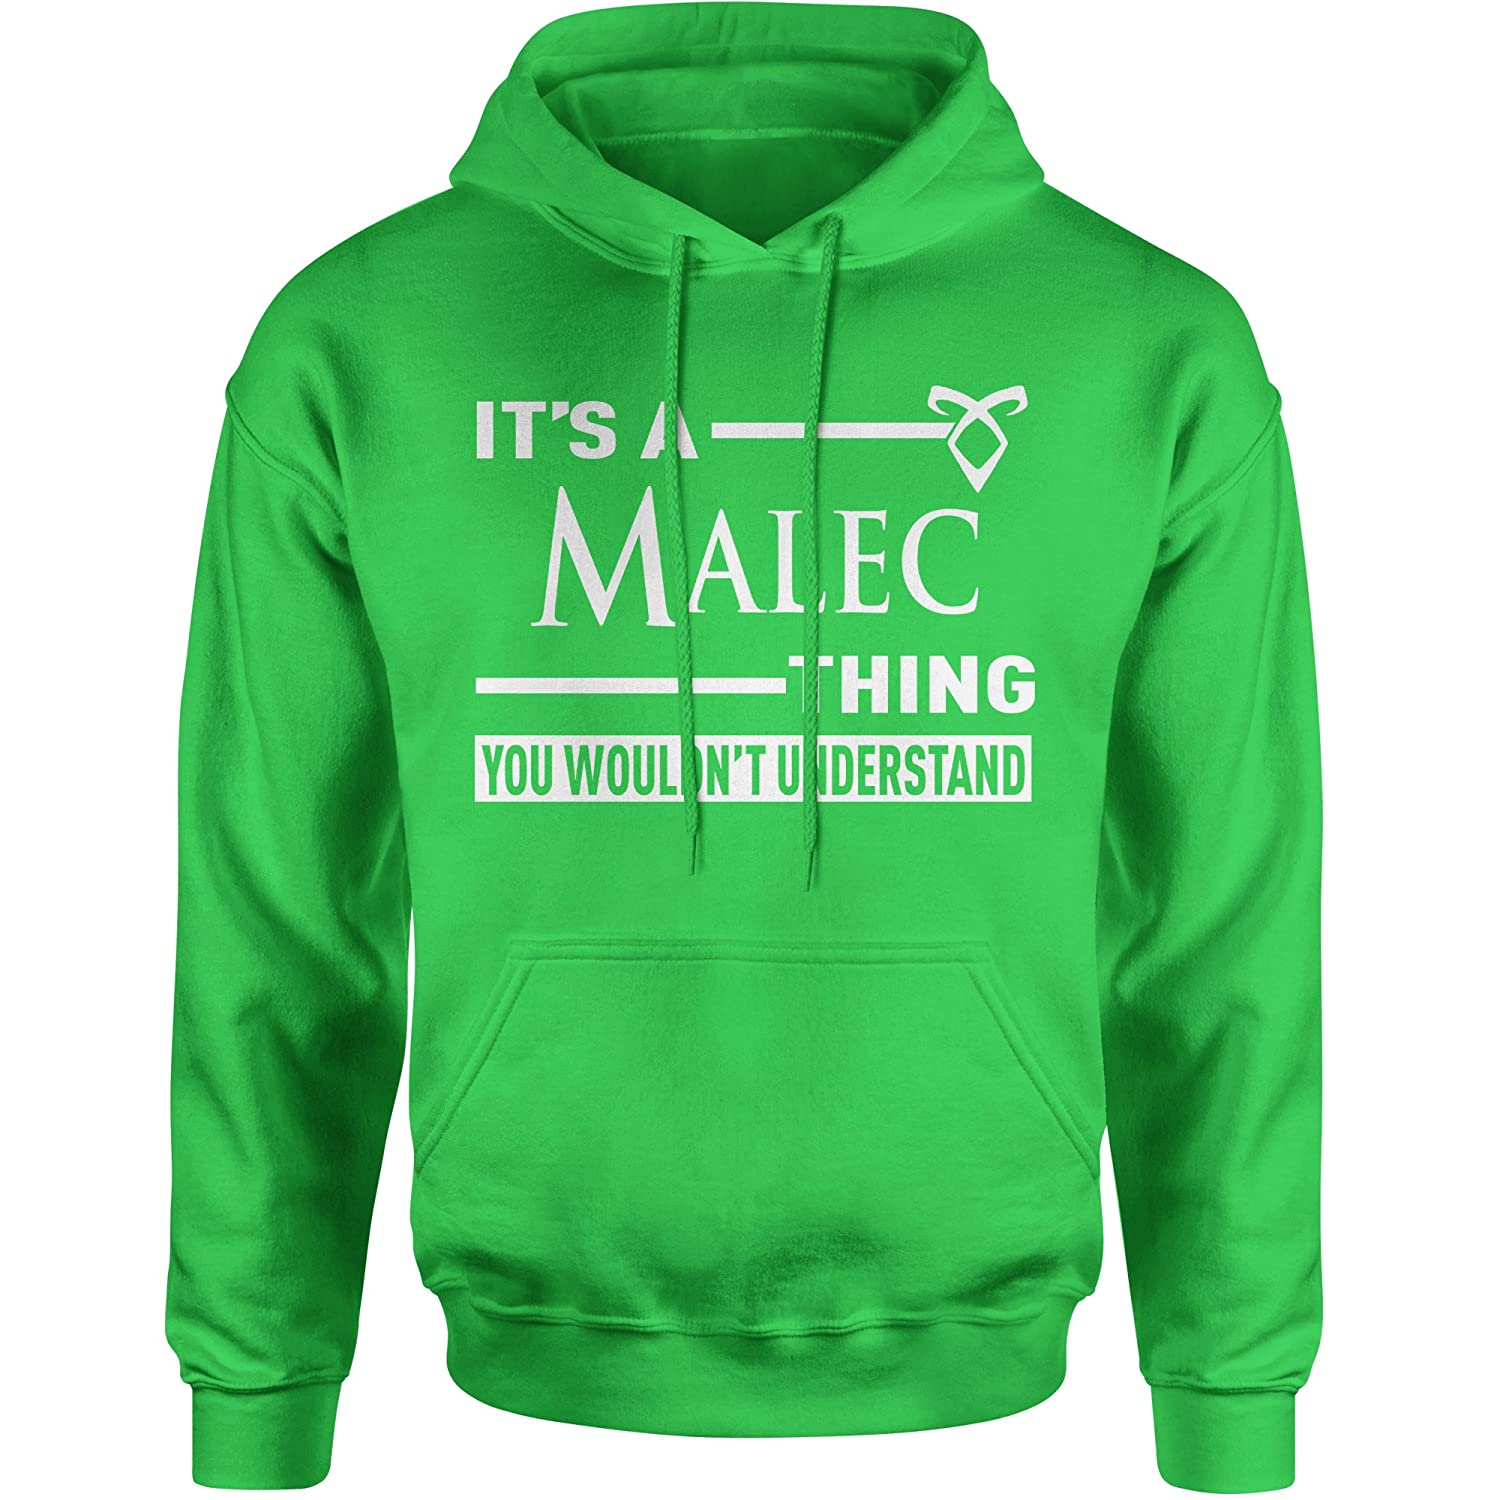 Expression Tees It's A Malec Thing, You Wouldn't Understand Unisex Adult Hoodie You Wouldn' t Understand Unisex Adult Hoodie 2174-H